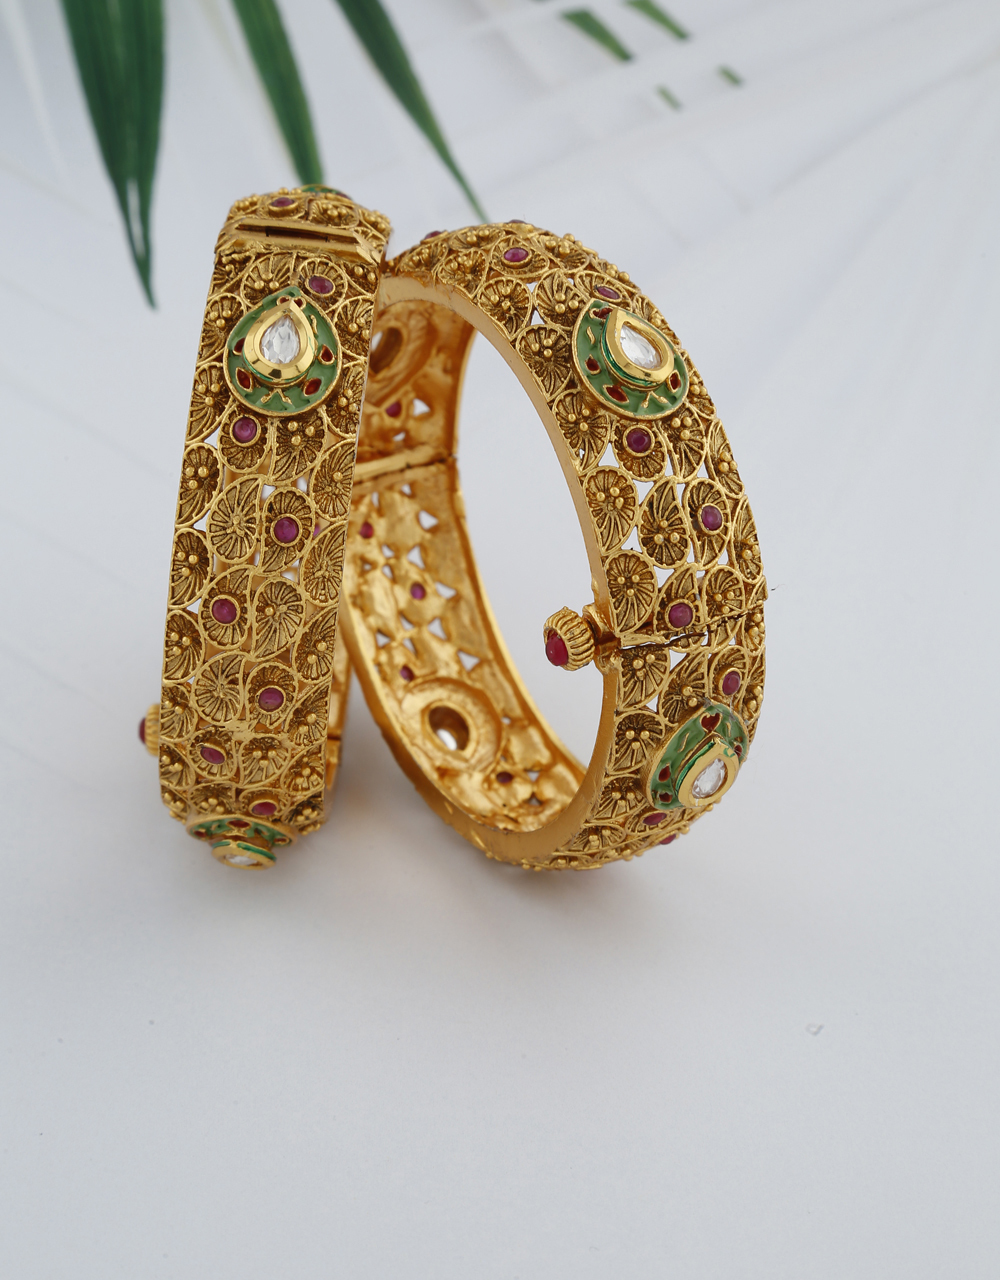 Fancy Designer With Drop Shape And Decked With Small Pink Stone Bangles For Women